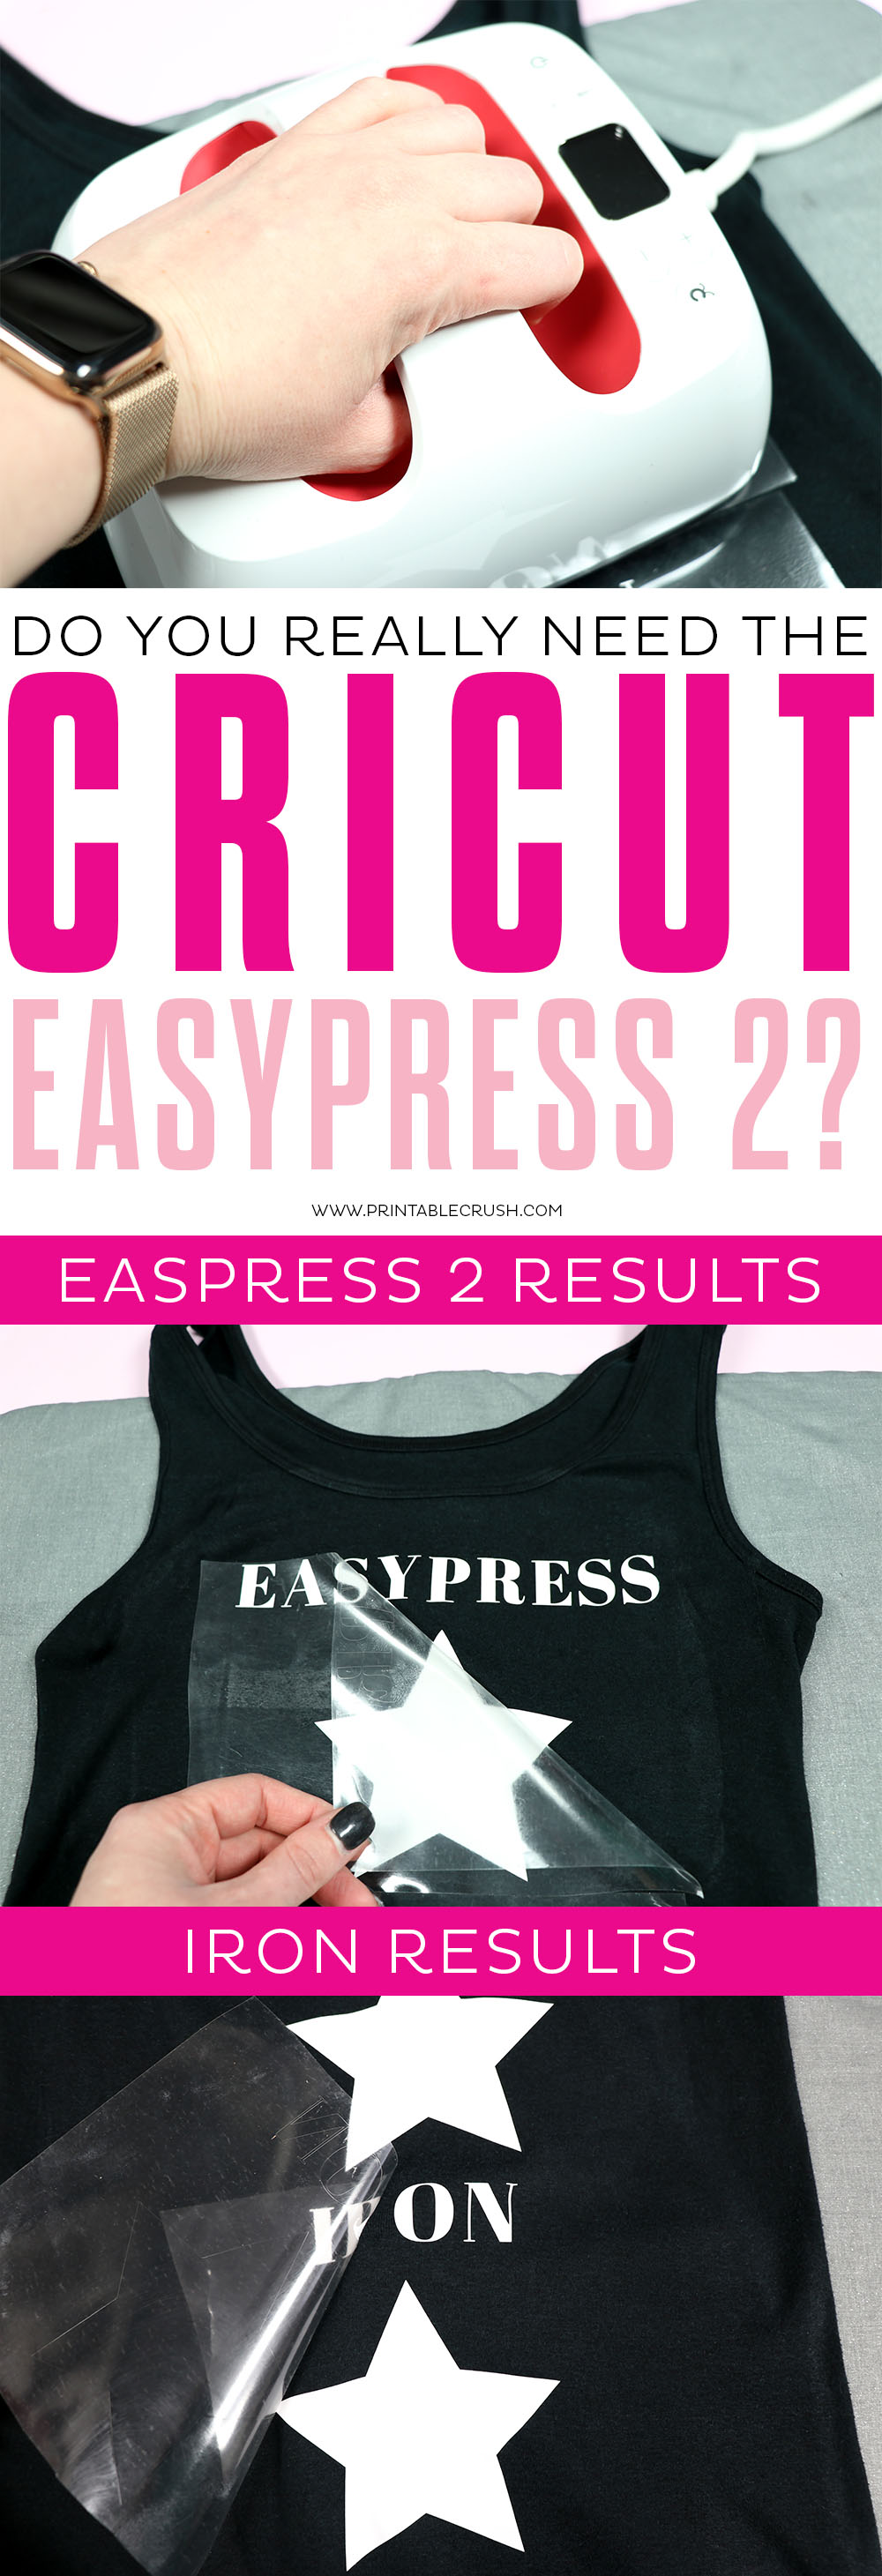 Want to know the difference between the EasyPress 2 and an iron when applying iron-on? Well, one is clearly meant to be an iron while the EasyPress 2 makes amazing iron-on tees!   #cricutmade #cricuteasypress2 #easypress #irononvinyl #cricutironon #sayitwithcricut via @printablecrush